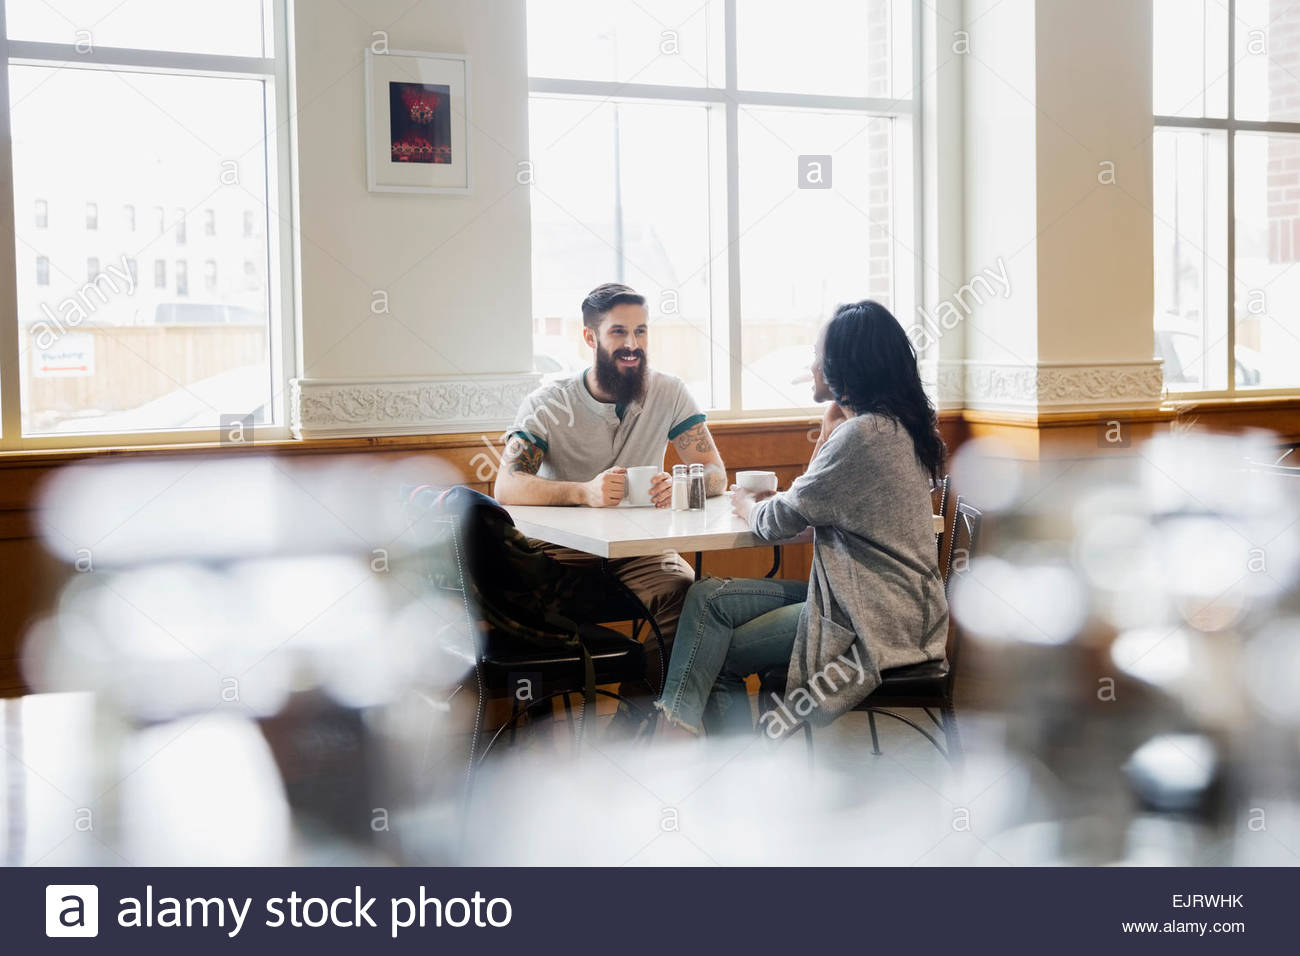 Couple drinking coffee at cafe table - Stock Image